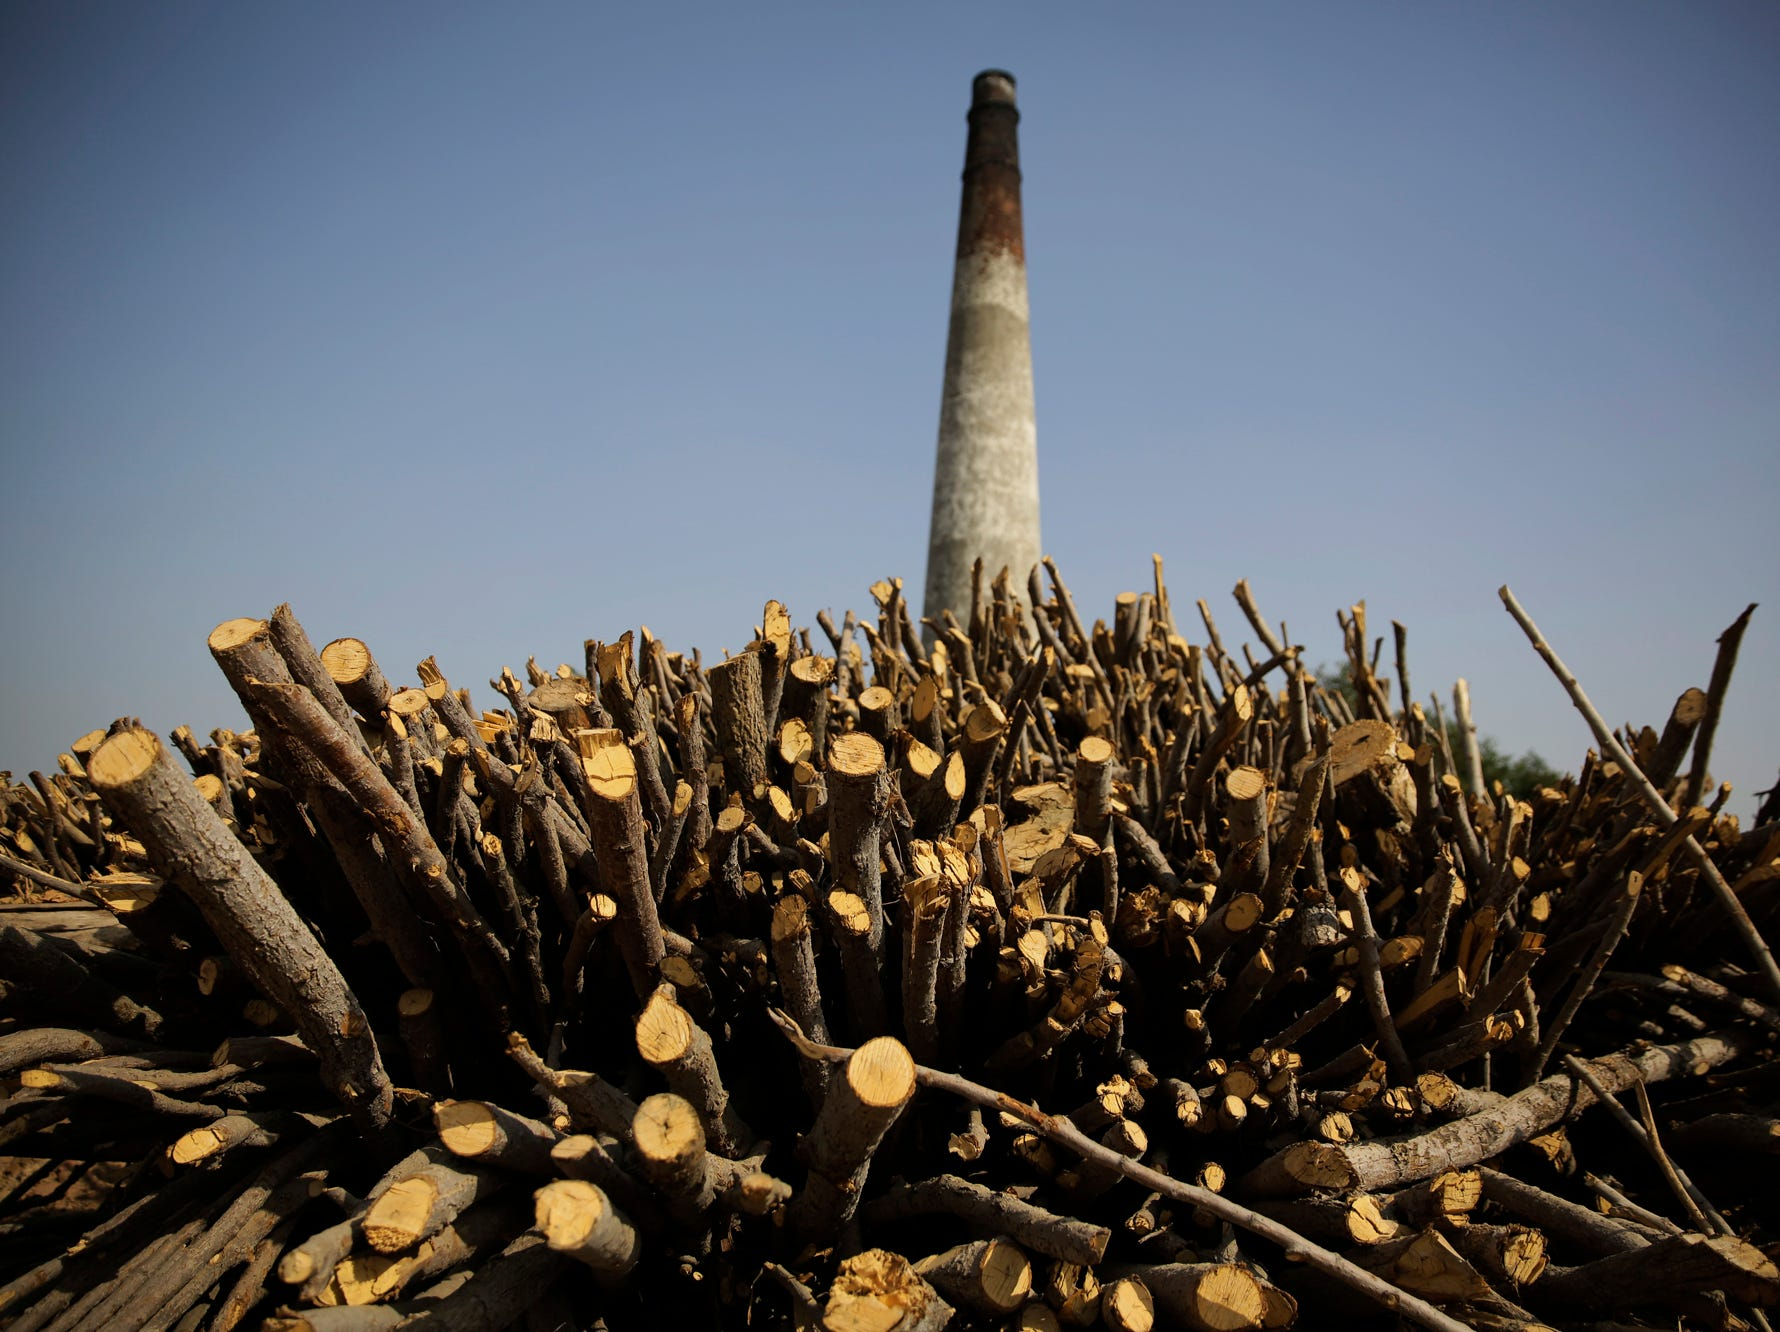 Firewood is stacked up at a closed brick kiln near Mathura, India, Wednesday, Oct. 17, 2018. The Indian capital and large parts of north India gasp for breath for most of the year due to air pollution caused by dust, burning of crops, emissions from factories and the burning of coal and piles of garbage. (AP Photo/Altaf Qadri)